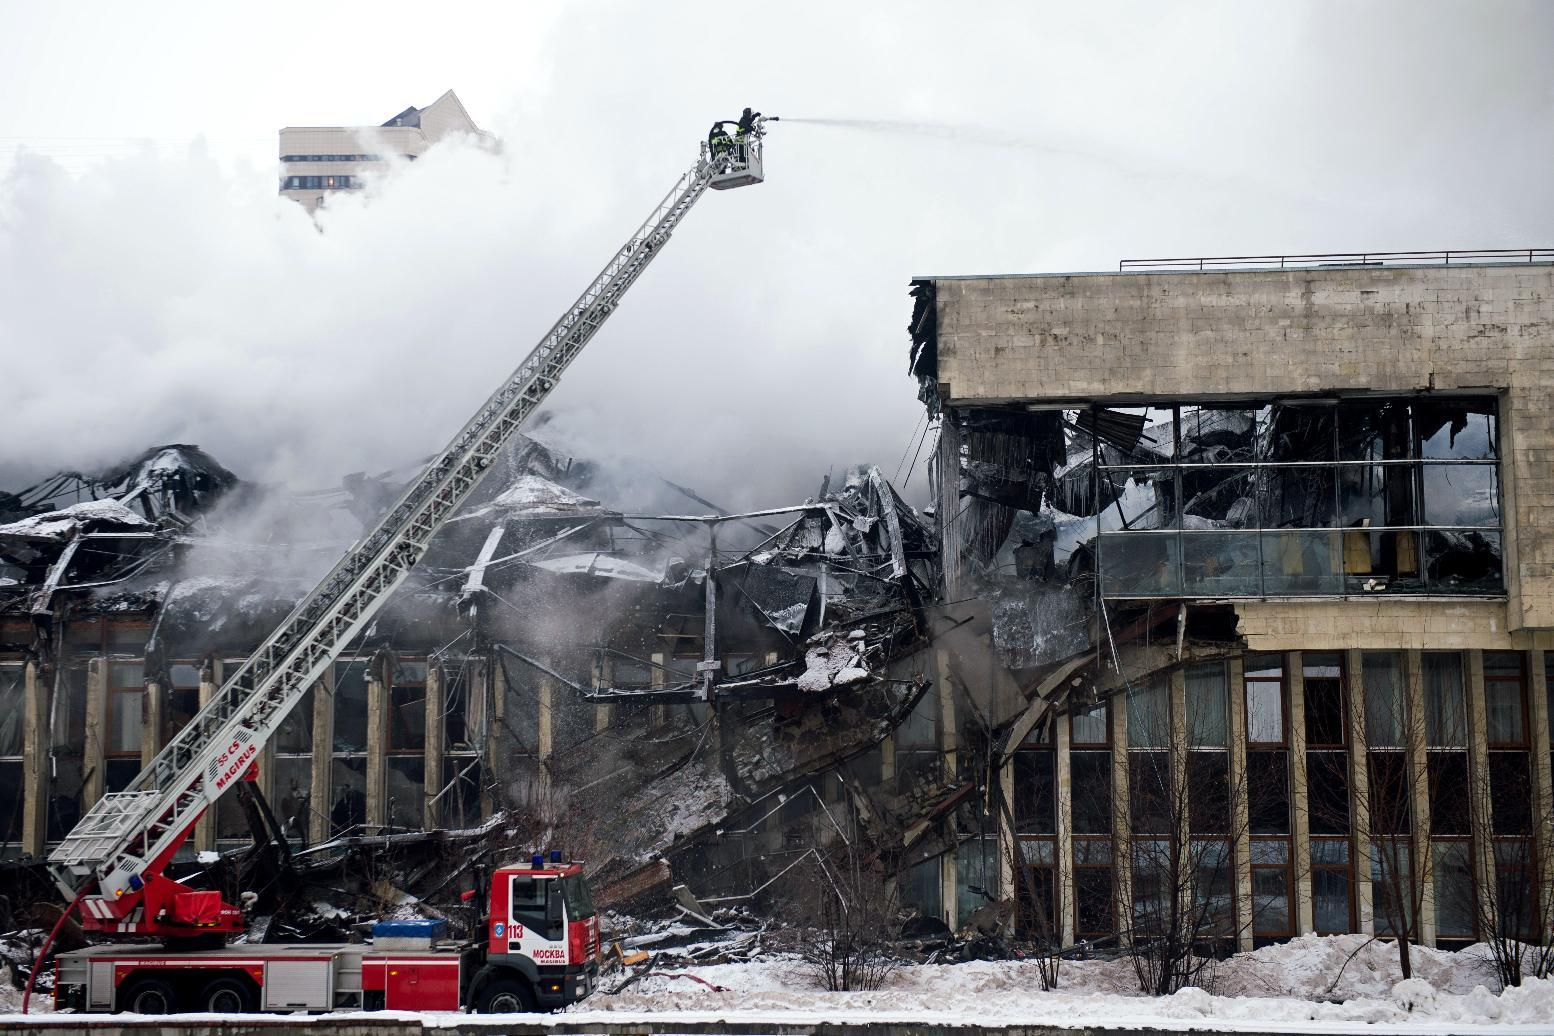 A million rare documents damaged in Moscow library blaze